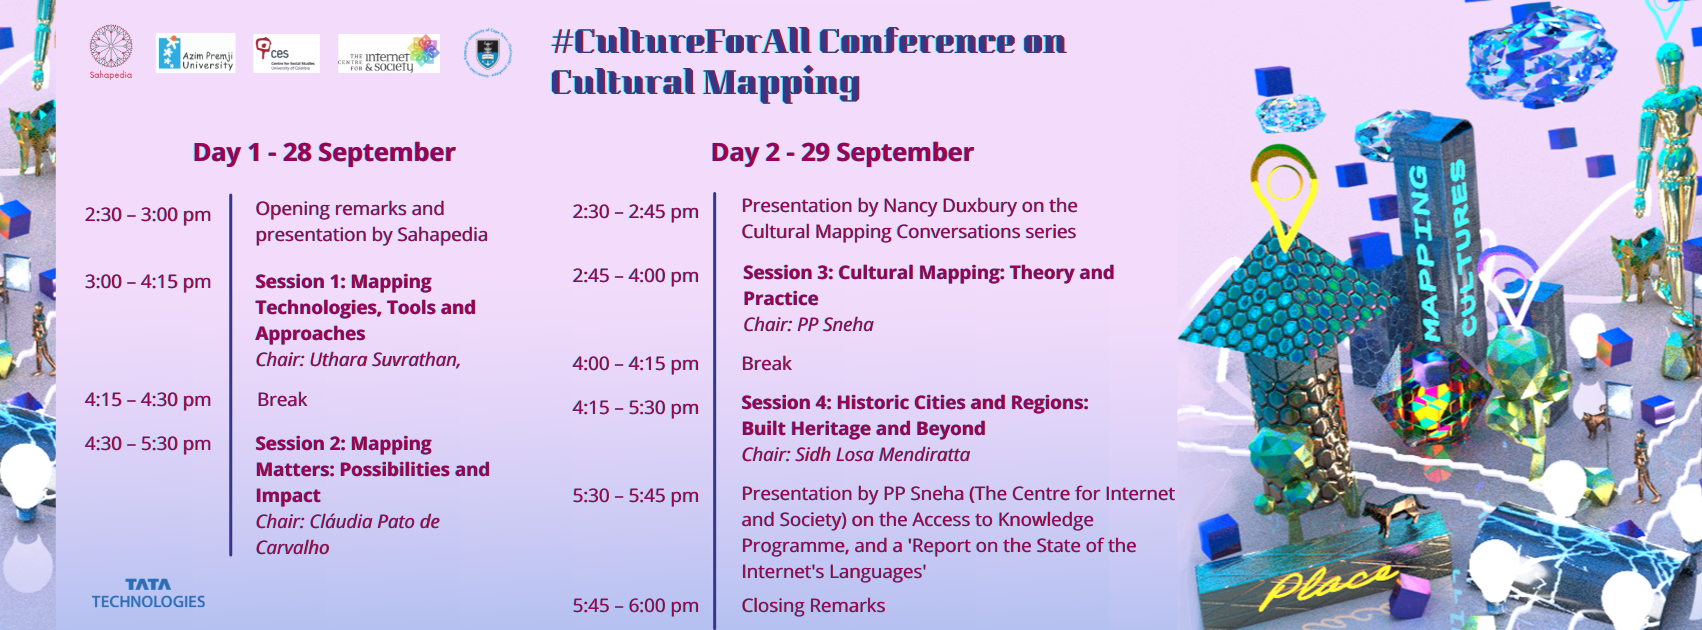 #CultureForAll Conference on Cultural Mapping